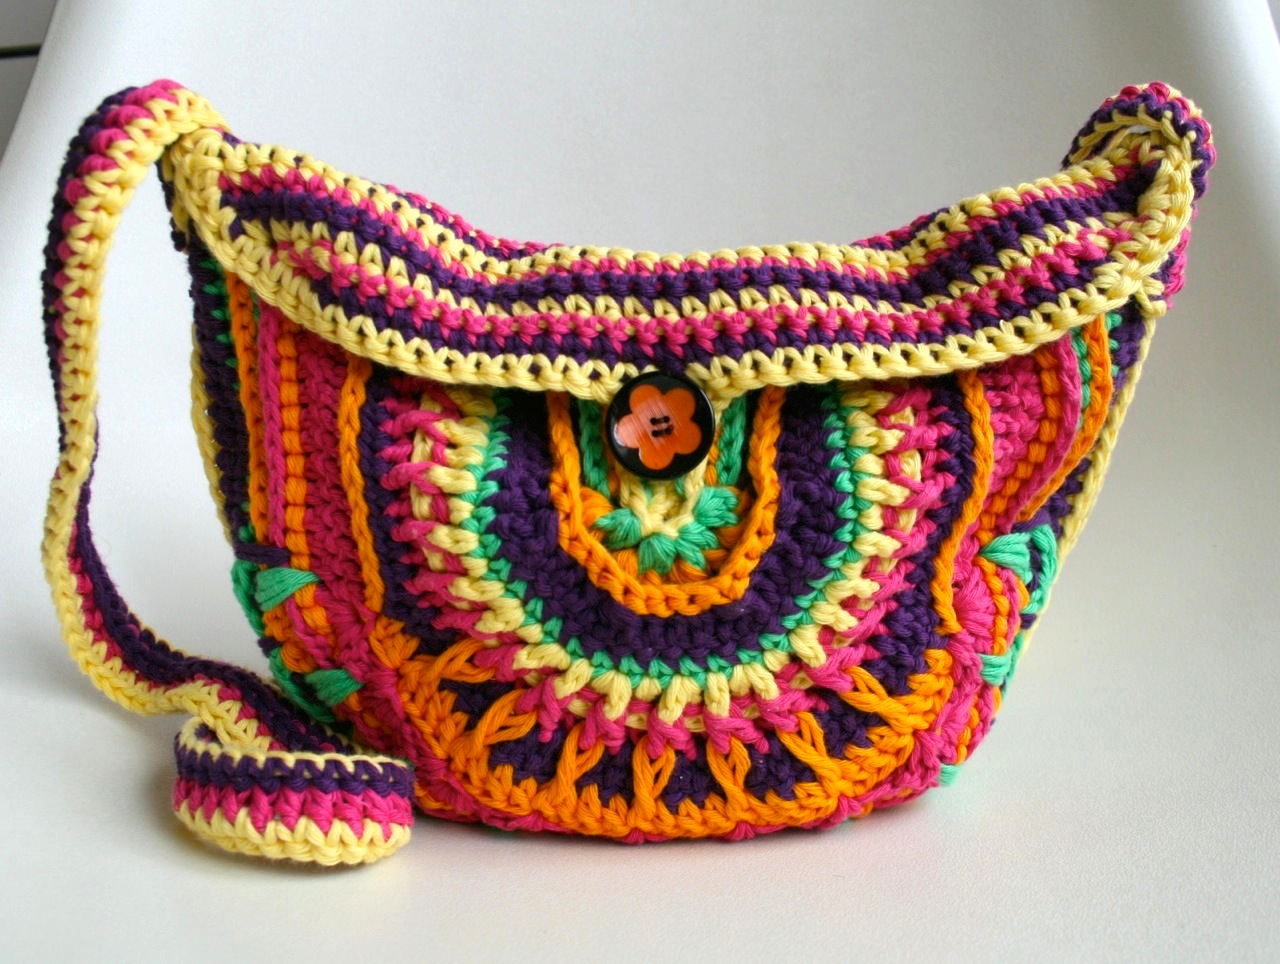 New boho crochet purse pattern... and a new collection of bags ...